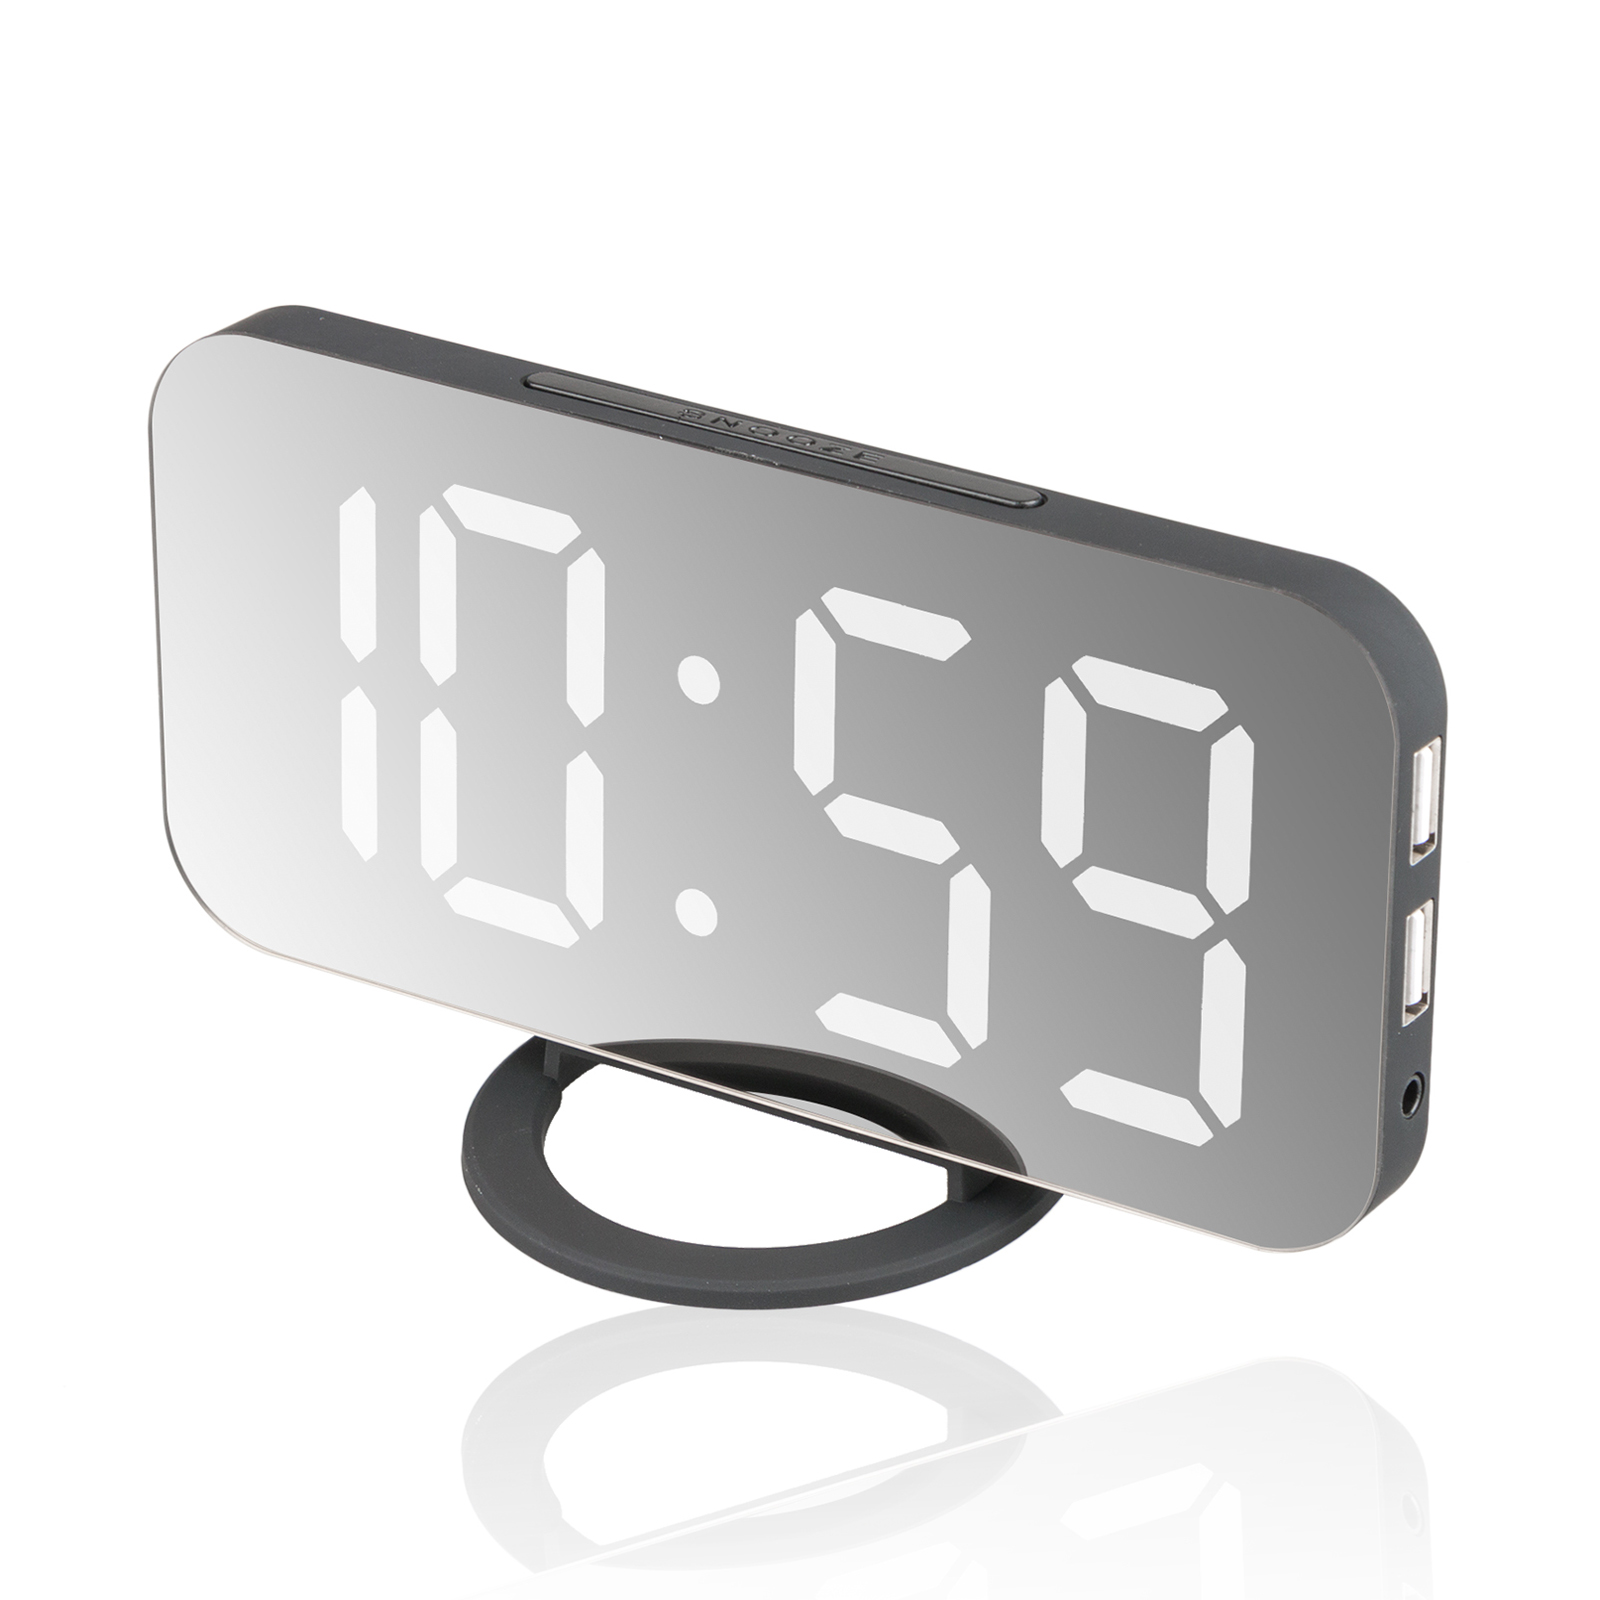 Alarm Clock Large Digital LED Display Sensor Automatic Portable Modern Battery Operated Mirror, Soft Light Snooze Desk, Night Mode (Included Battery)